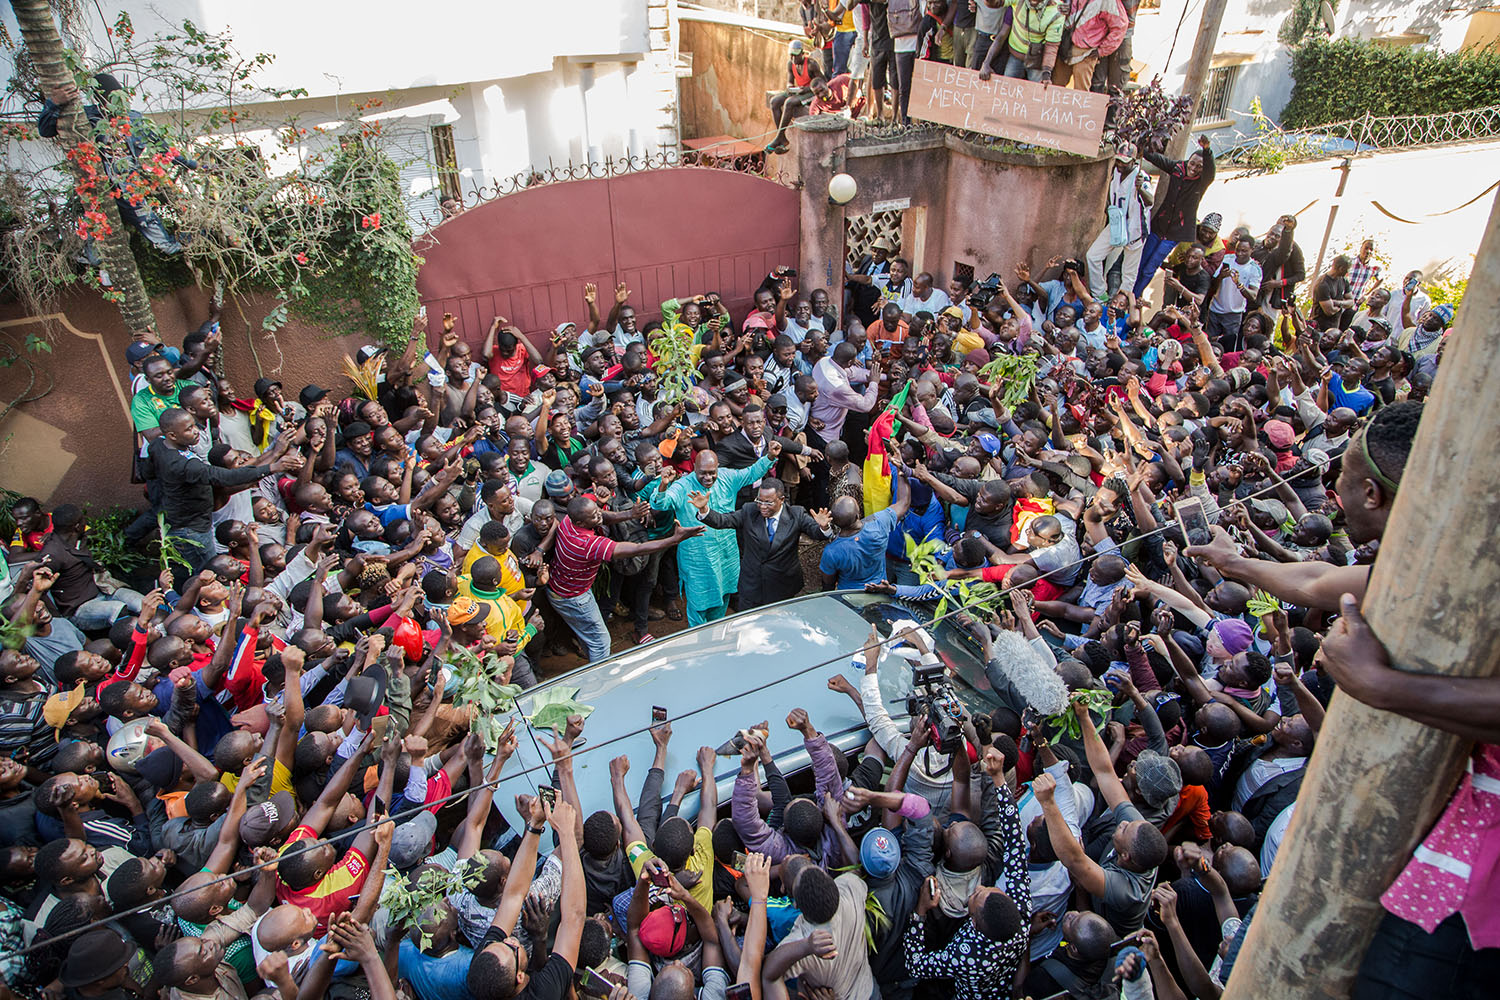 Cameroonian opposition leader Maurice Kamto is greeted by hundreds of supporters after his release from prison in Yaounde on Oct. 5, 2019.